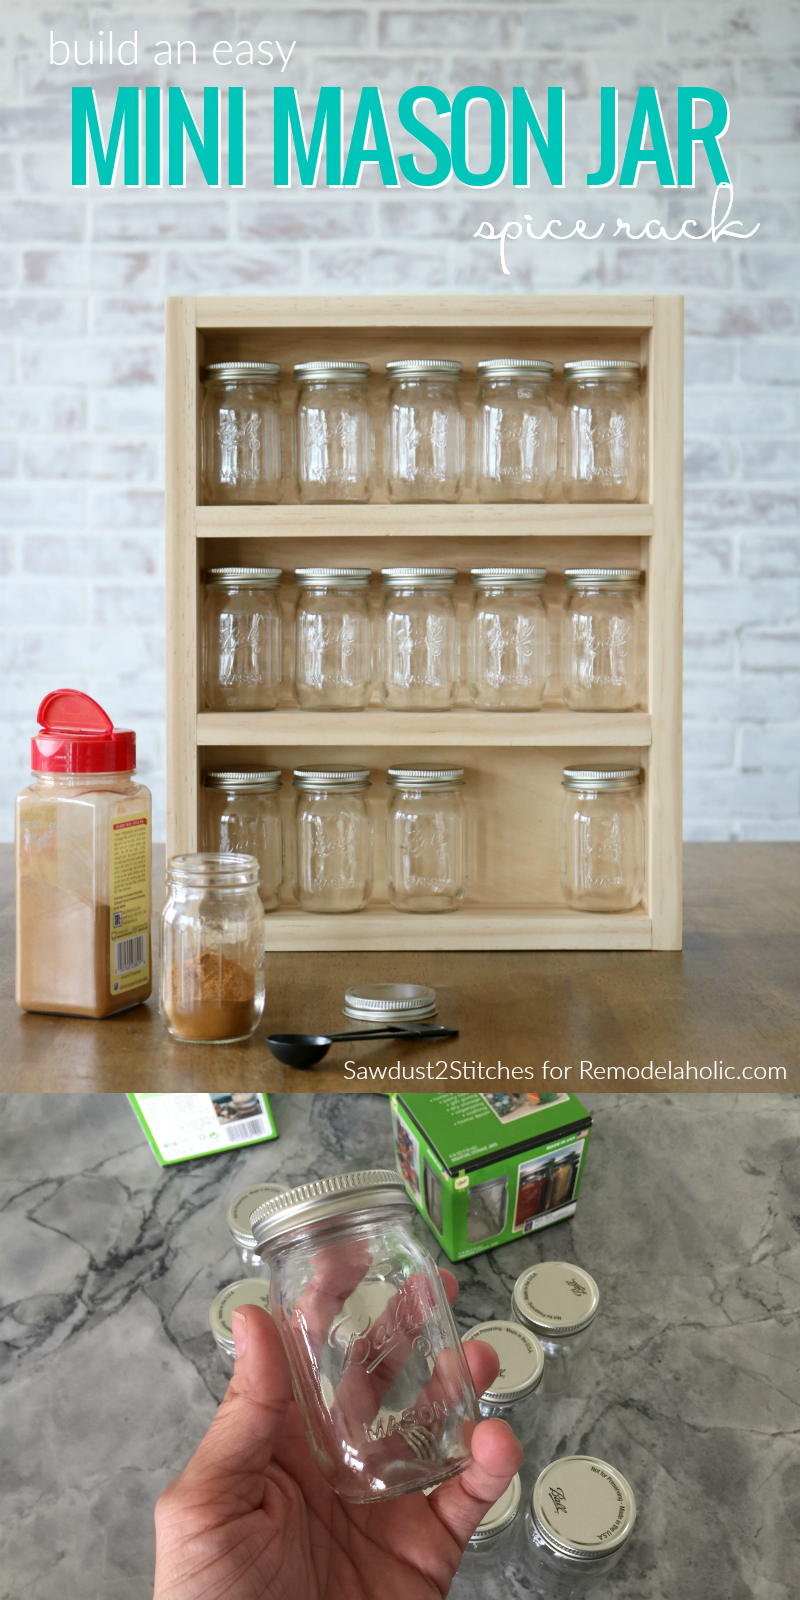 Build An Easy Mini Mason Jar Spice Rack Shelf For Storage And Organizing Remodelaholic Diyprojects Diyideas Mason Jar Diy Mason Jar Kitchen Mini Mason Jars